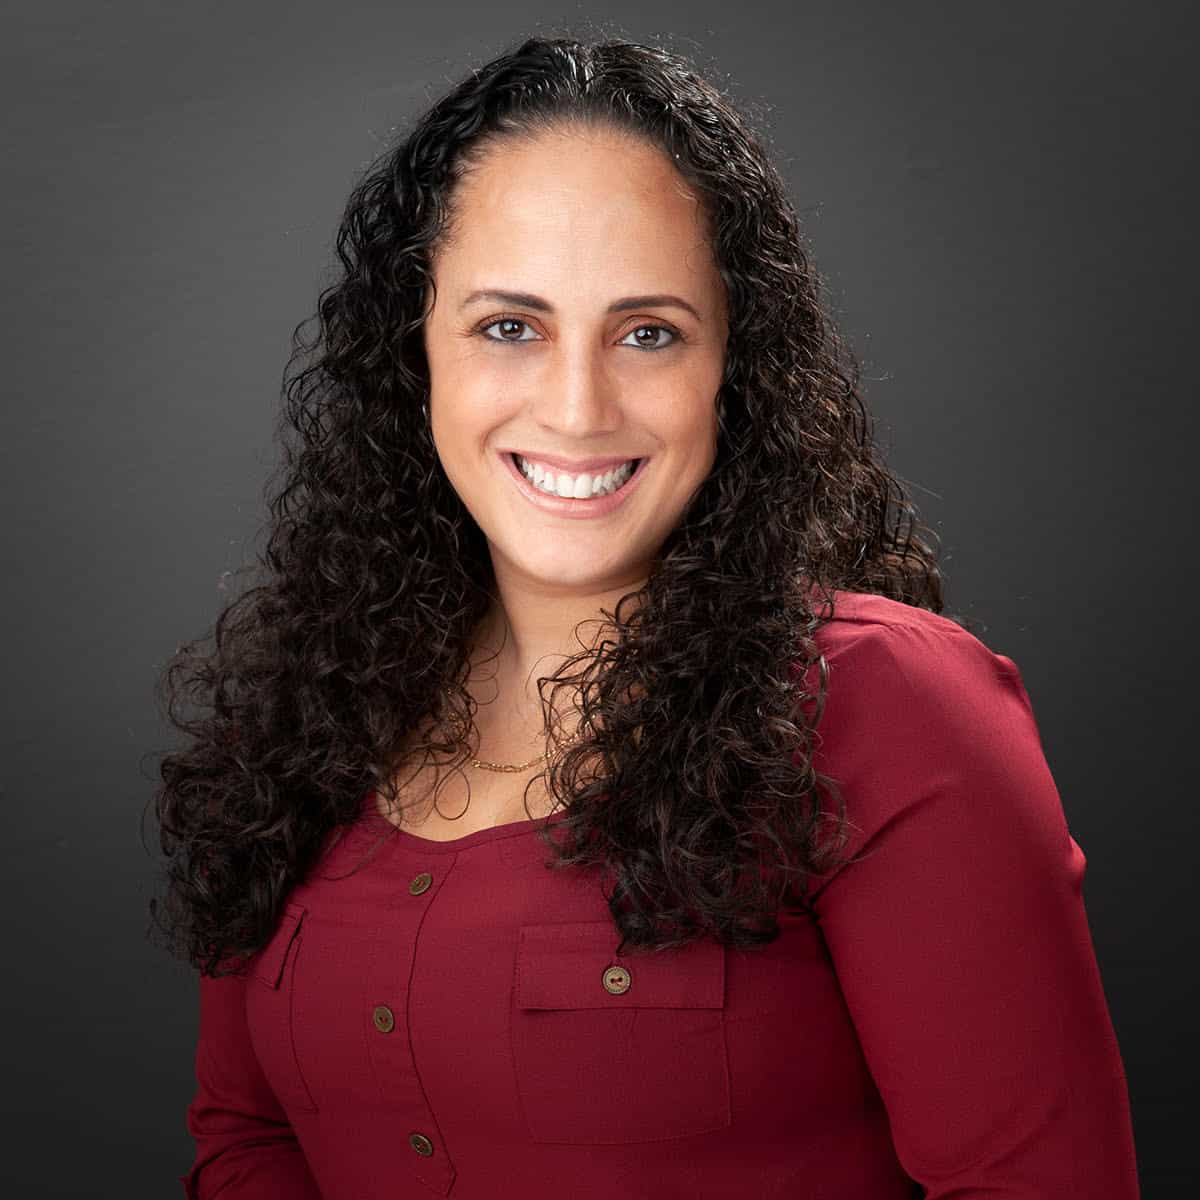 Damaris is reliable with a strong work ethic. Her business is built on: dedication, determination, communication and trust while embodying the ability to adapt to her clients Real Estate needs. She will make your home buying or selling experience effortless and comfortable. Having moved at a young age to Orlando from Puerto Rico, she is very knowledgeable of the Orlando and the Central Florida markets. Damaris possesses strong family values and treats her customers like family not only as a guiding principal but as a way of life. She is proactive, detail oriented and a strong advocate for you. You can rest assured that she will help you achieve your goals, all while saving you a ton of money with the 1% Guys Team.